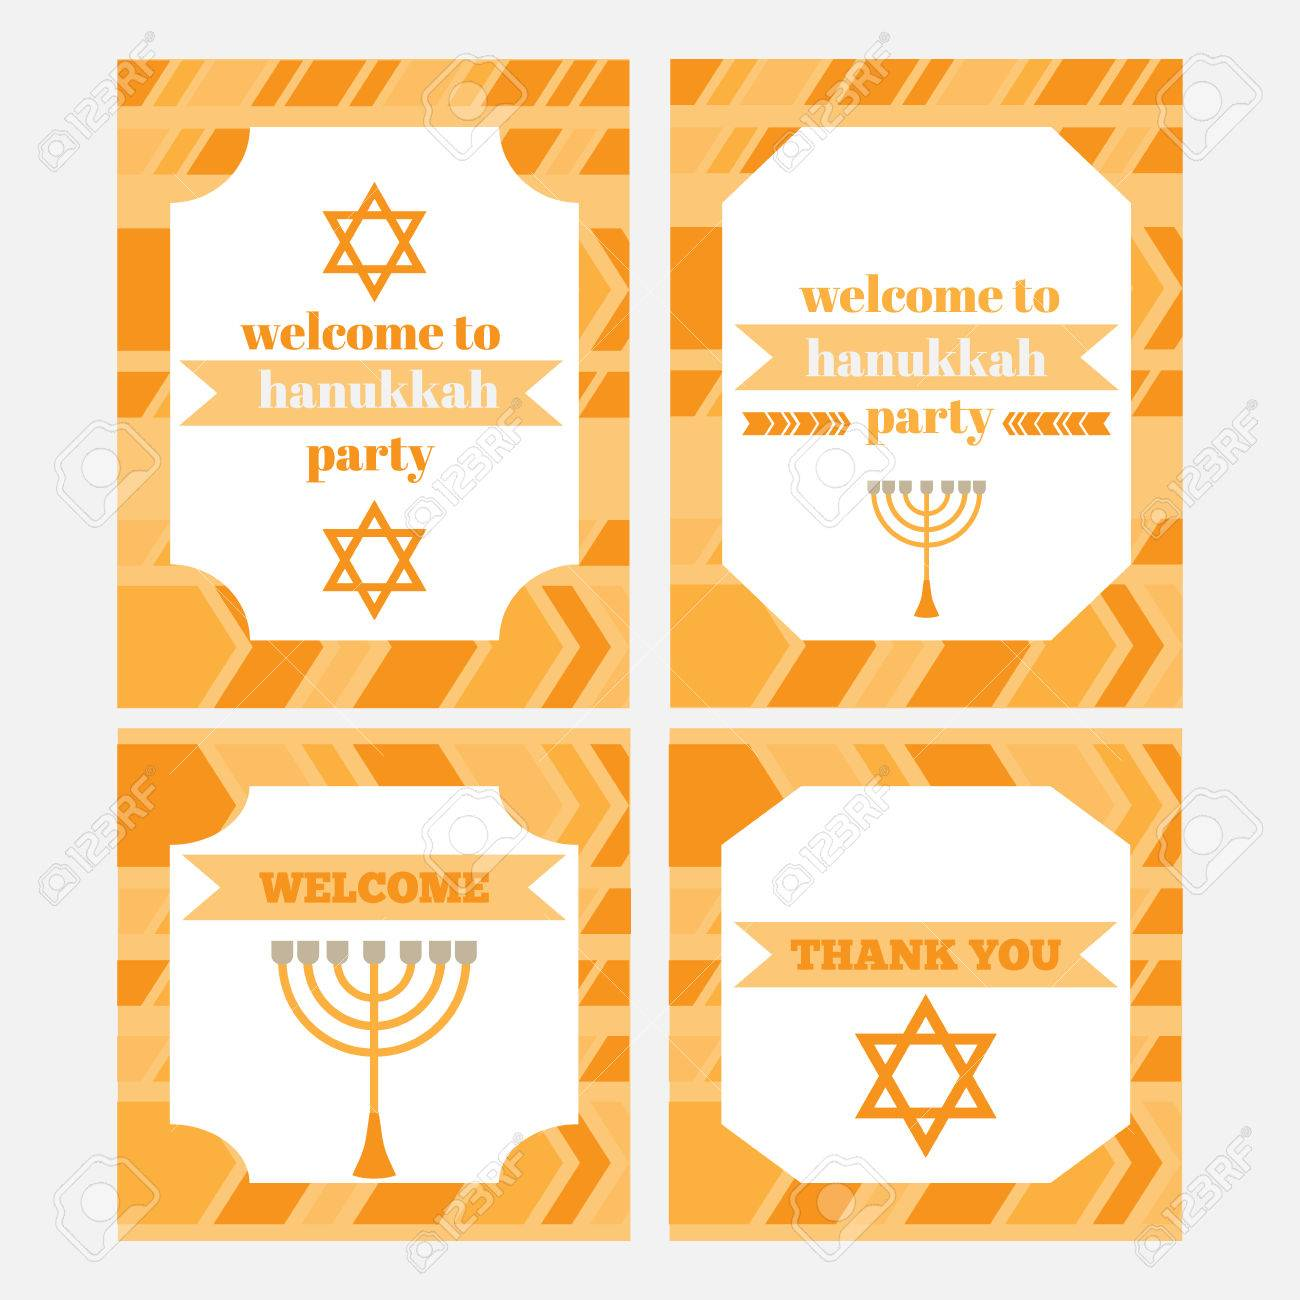 graphic about Printable Hanukkah Card referred to as Printable preset of Jewish family vacation Hanukkahparty components. Templates,..